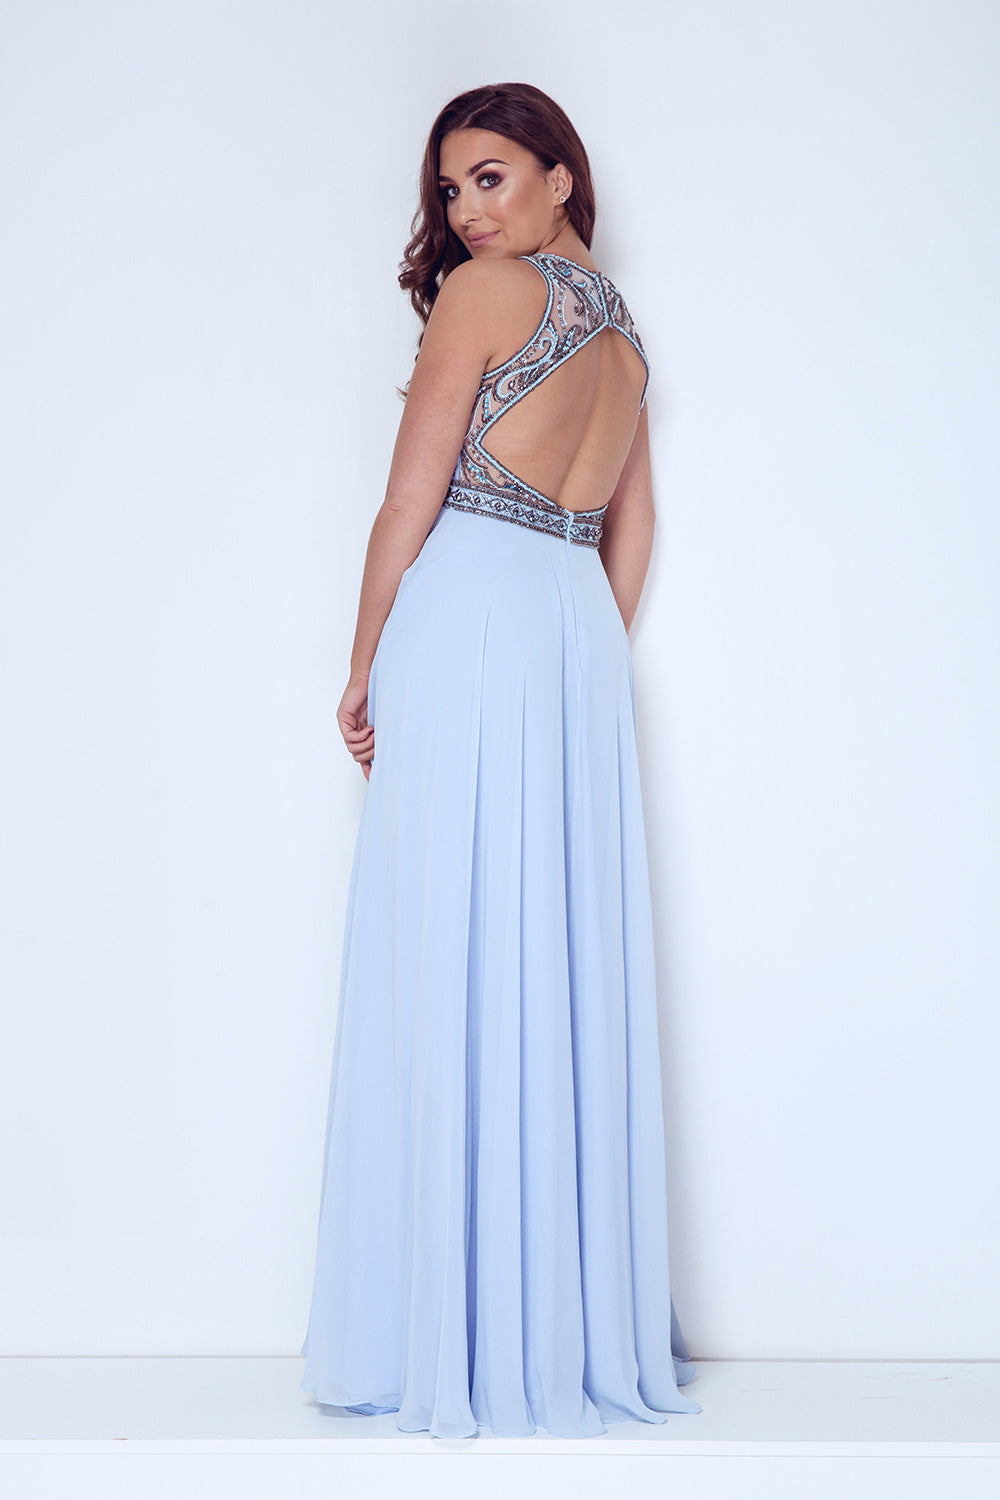 Dynasty London Long Chiffon Evening Gown - Gissings Boutique